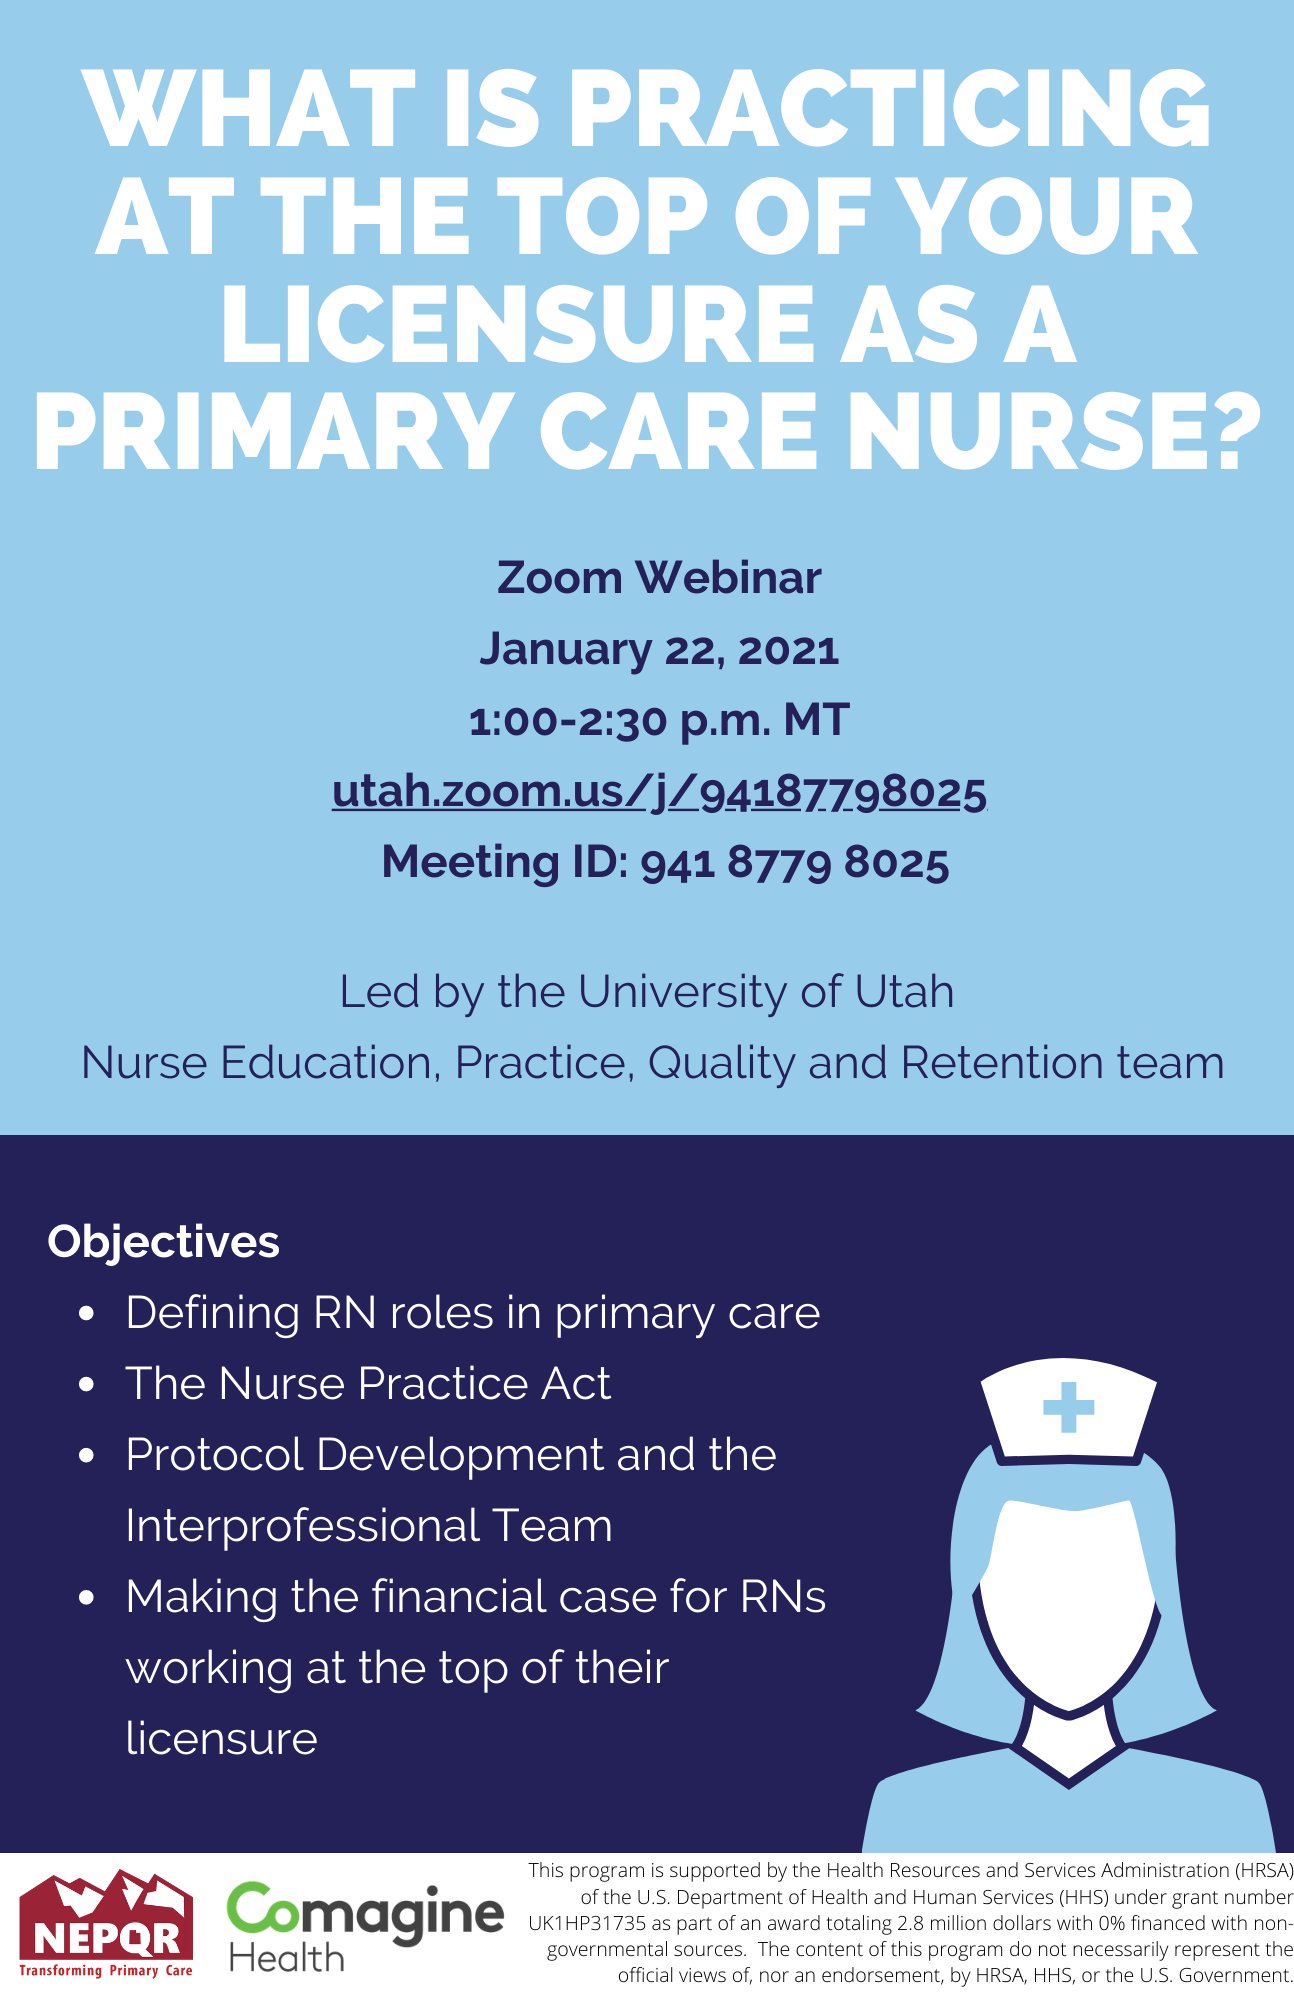 What is Practicing at the top of your licensure as a primary care nurse